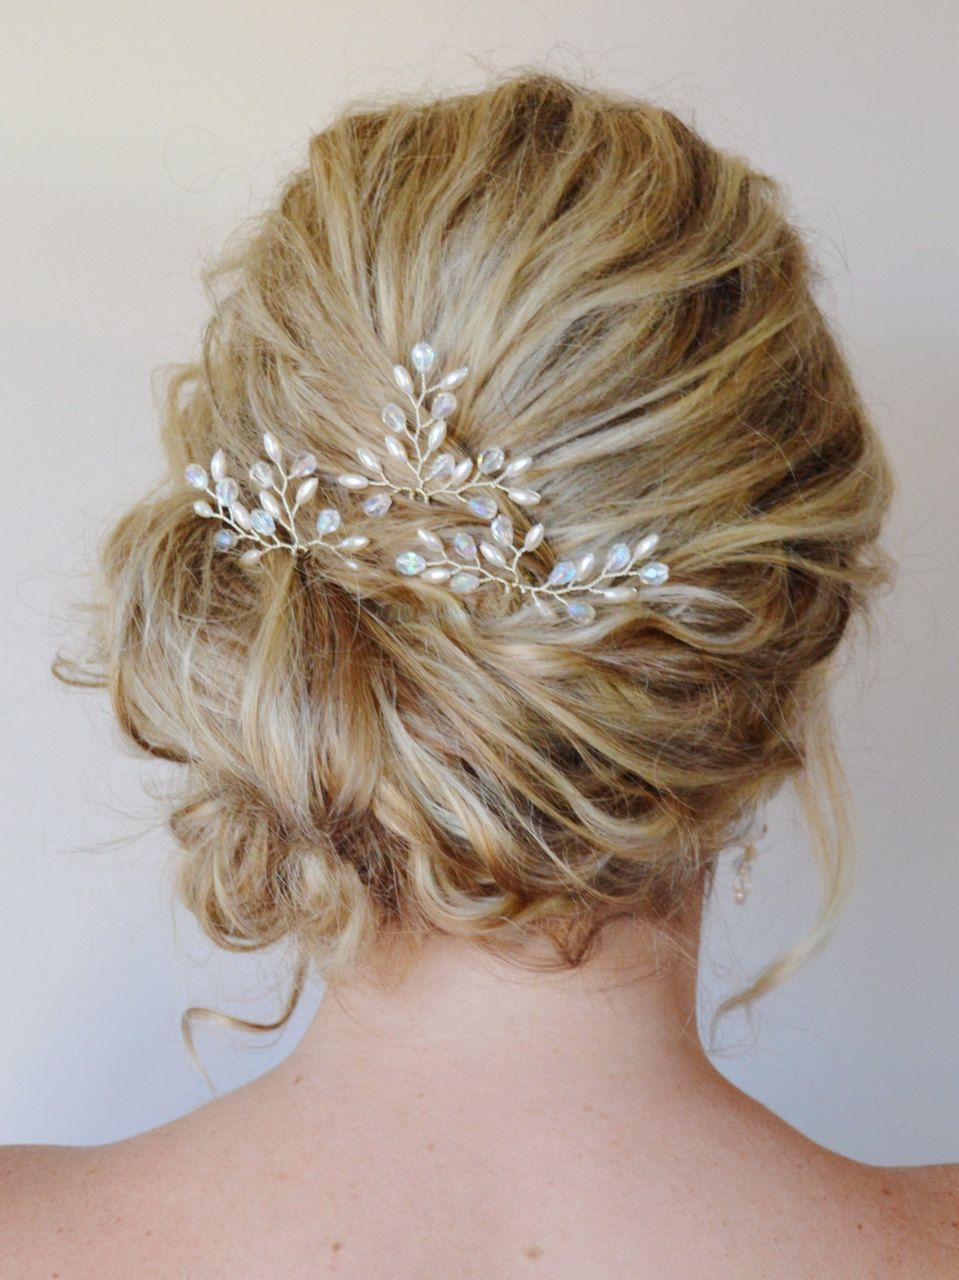 Bridal Hair Accessories, Bridal Hair Pins,